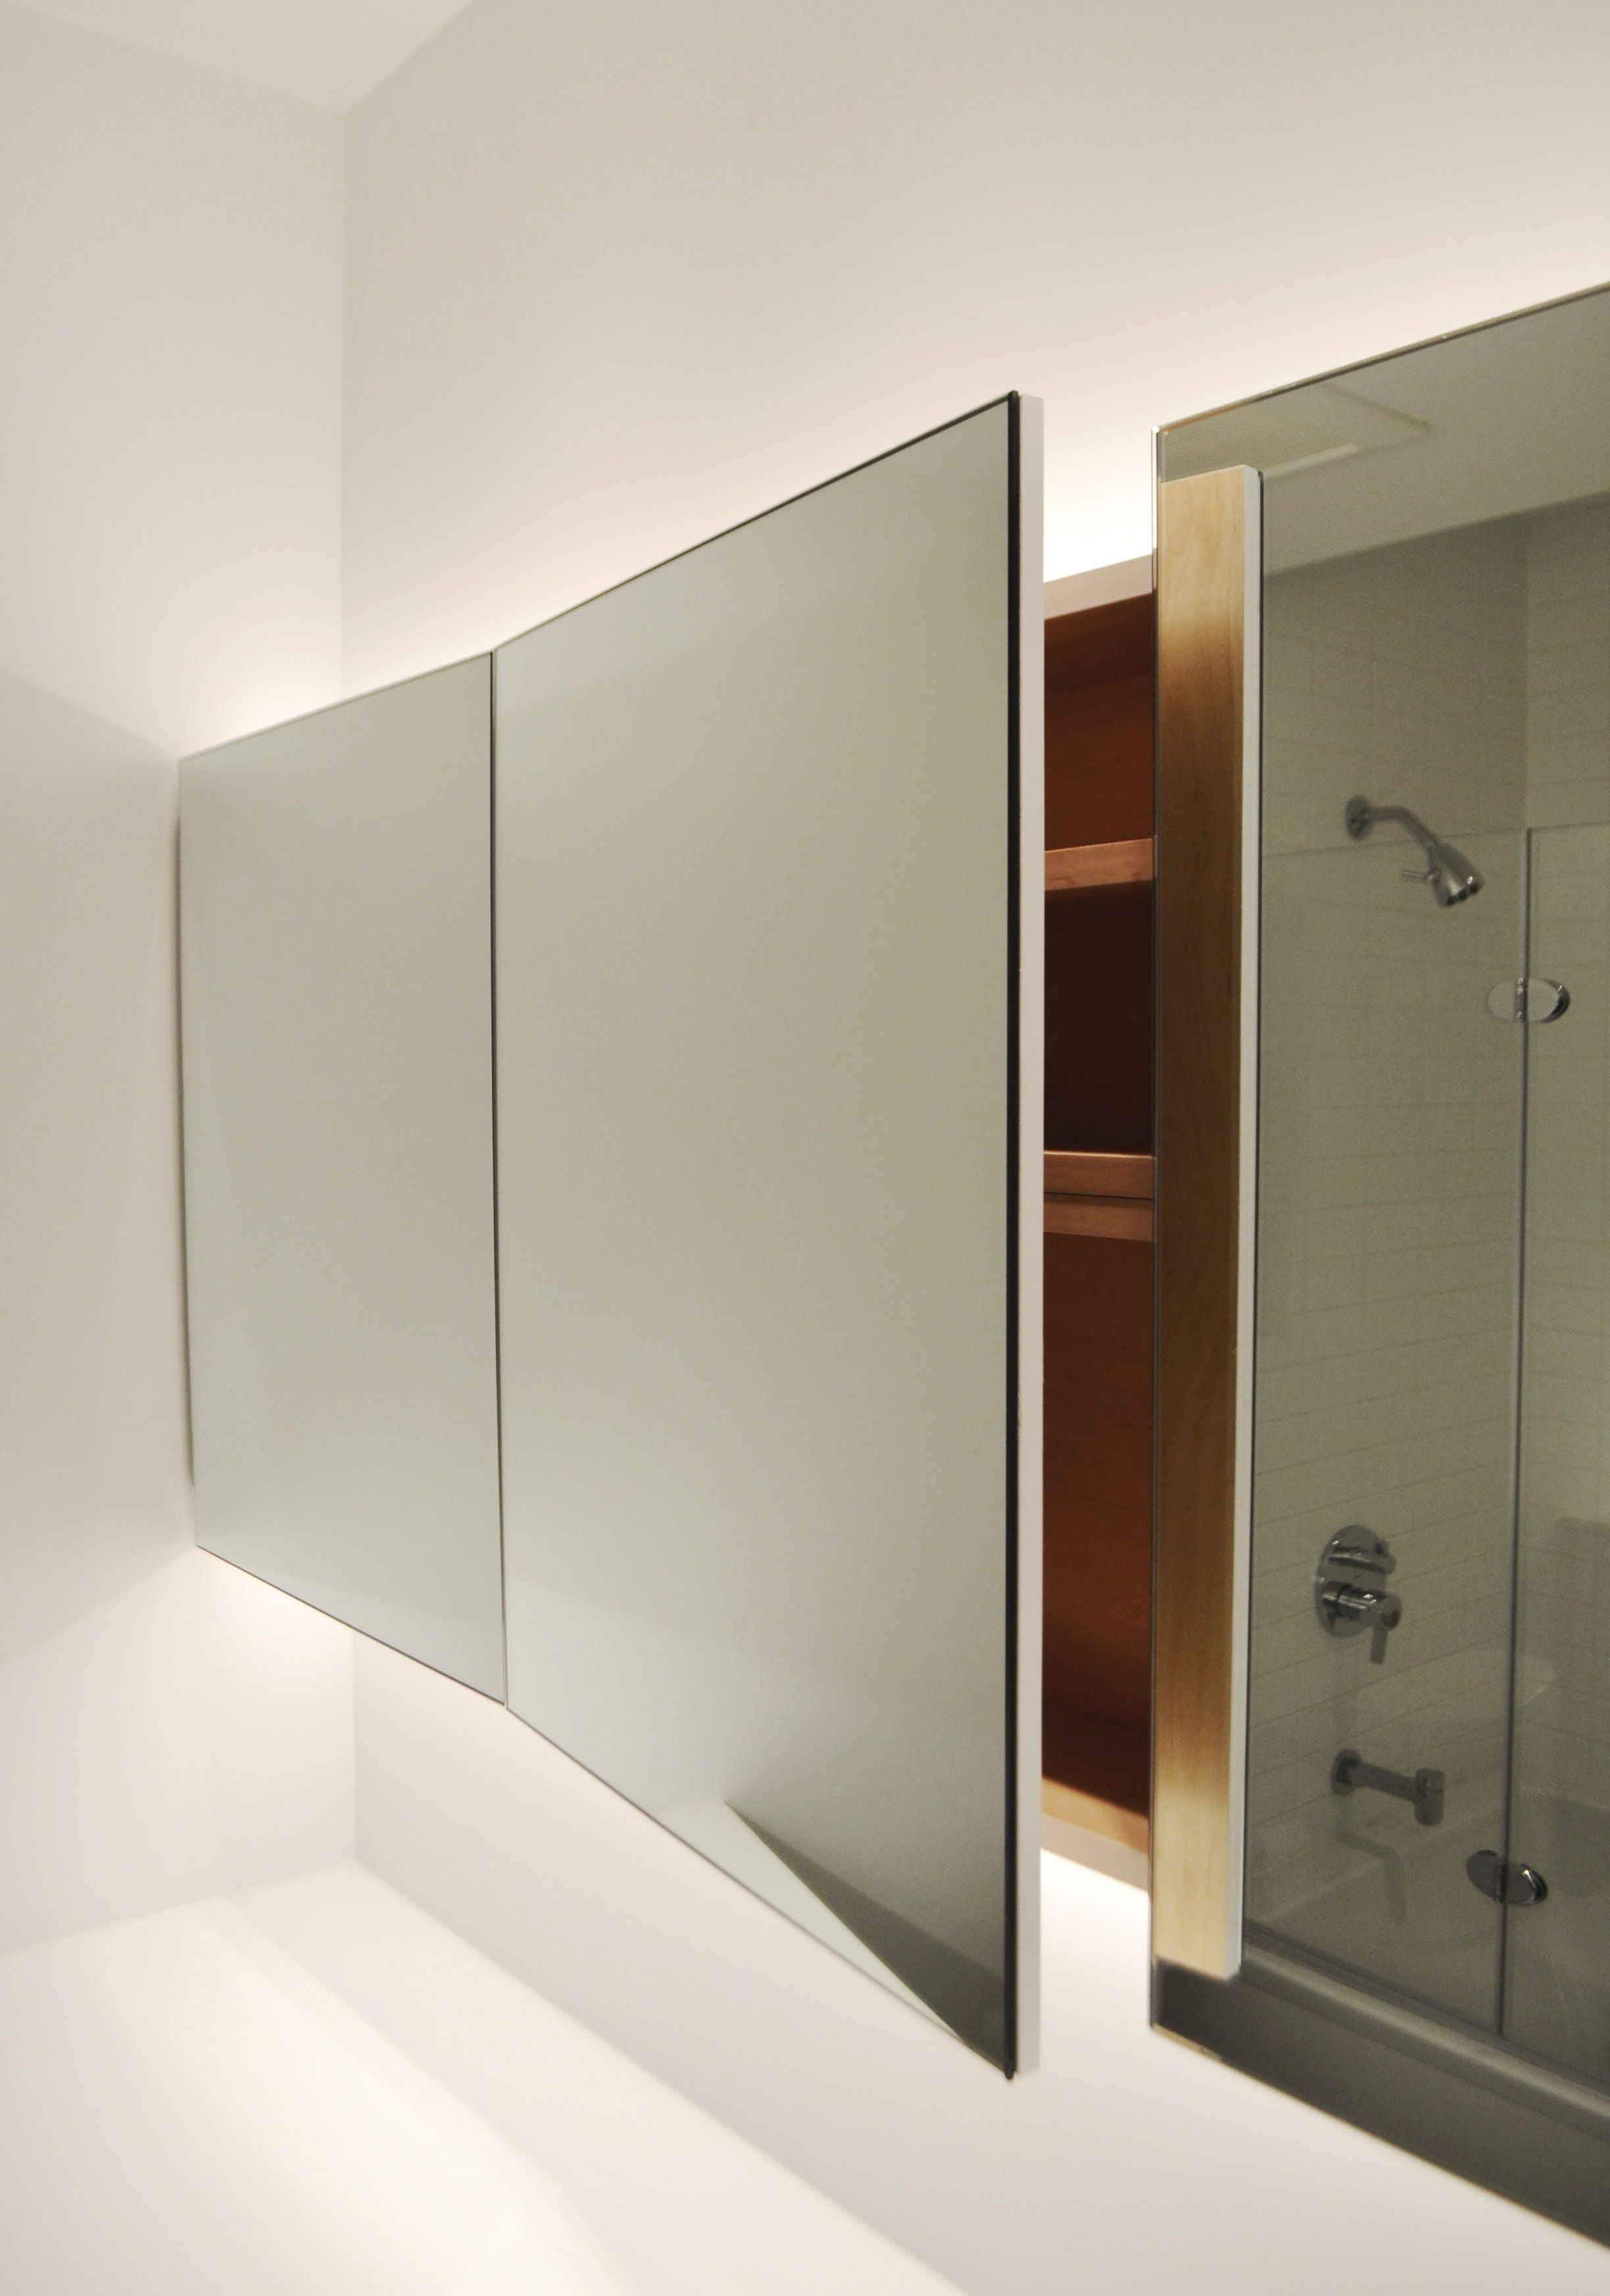 55 Robern Recessed Medicine Cabinets Apartment Kitchen Cabinet Ideas Che Full Length Mirror In Bathroom Bathroom Storage Full Length Mirror Bathroom Cabinet